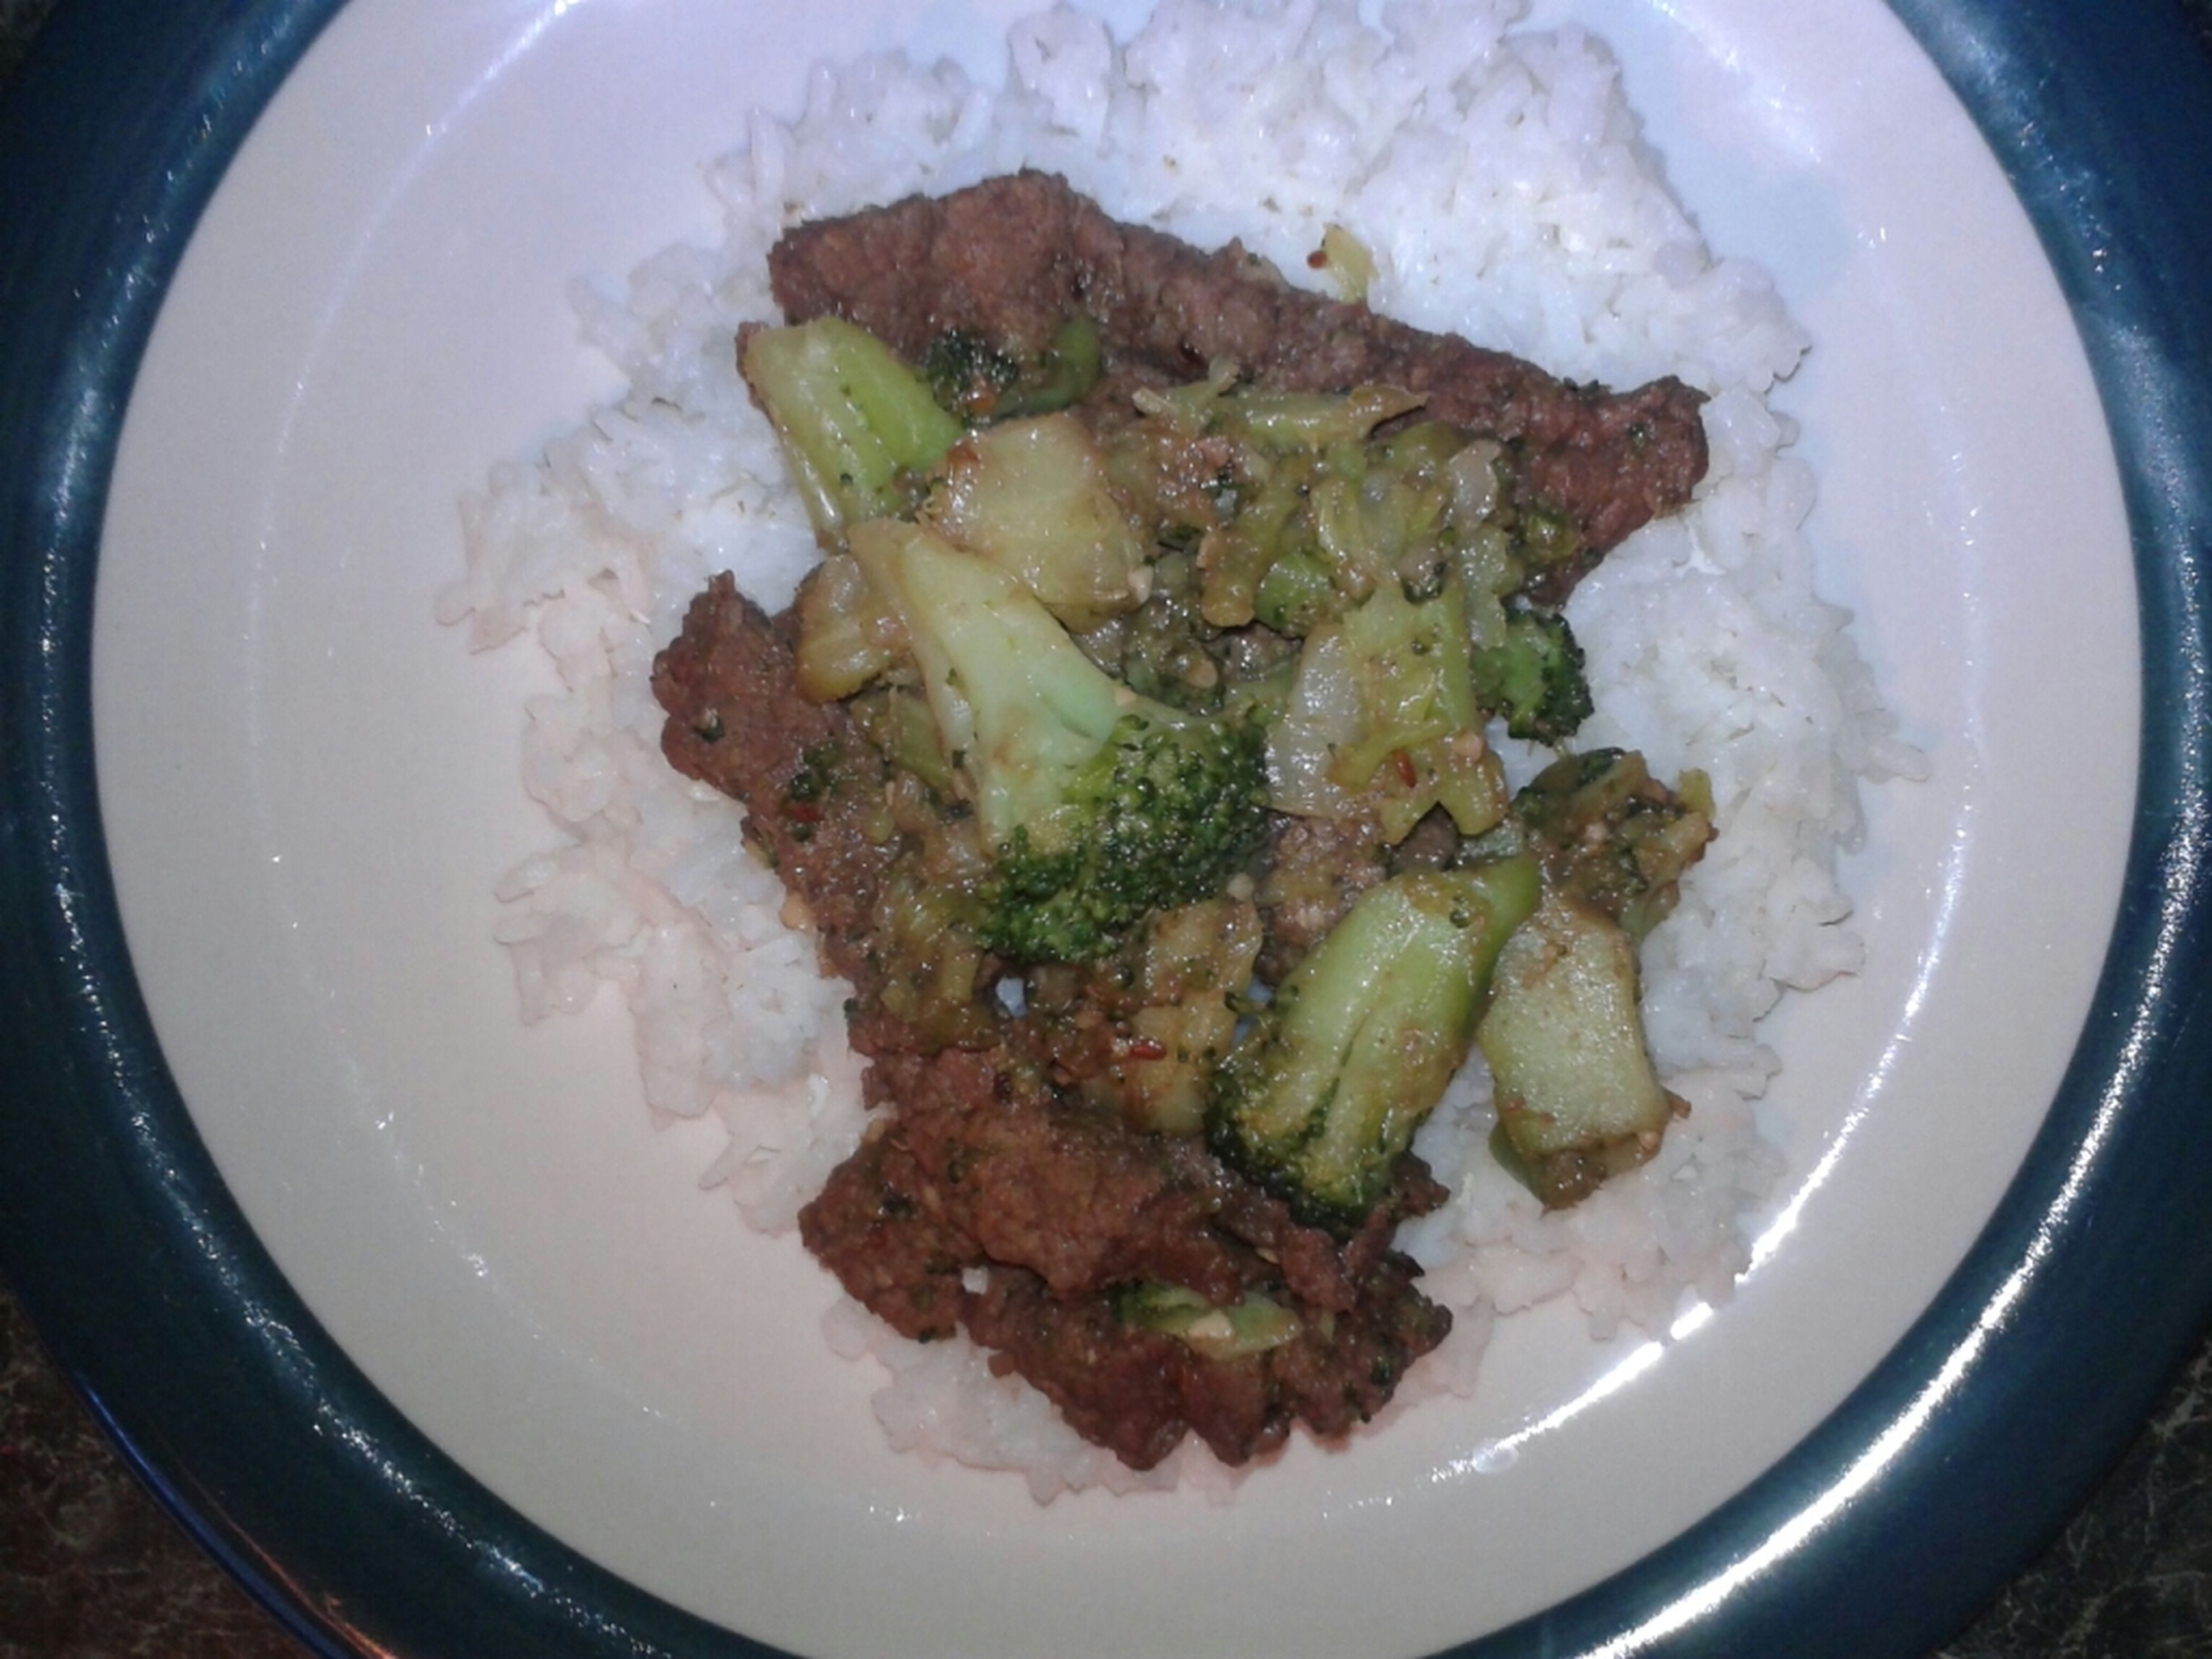 Beef And Broccoli That's What's For Dinner